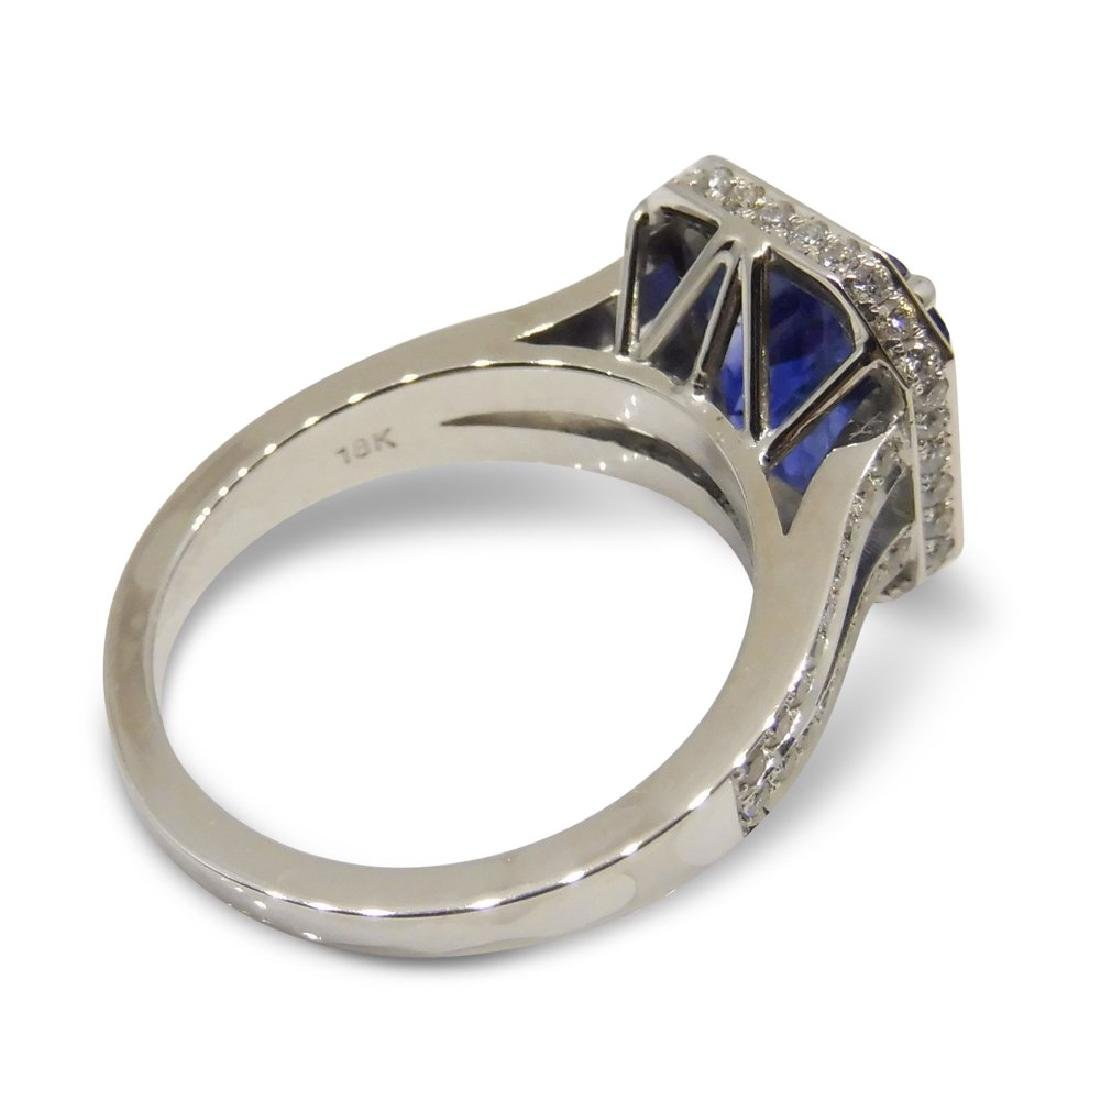 18K White Gold Unheated Sapphire Ring, 5.75ctw - 7